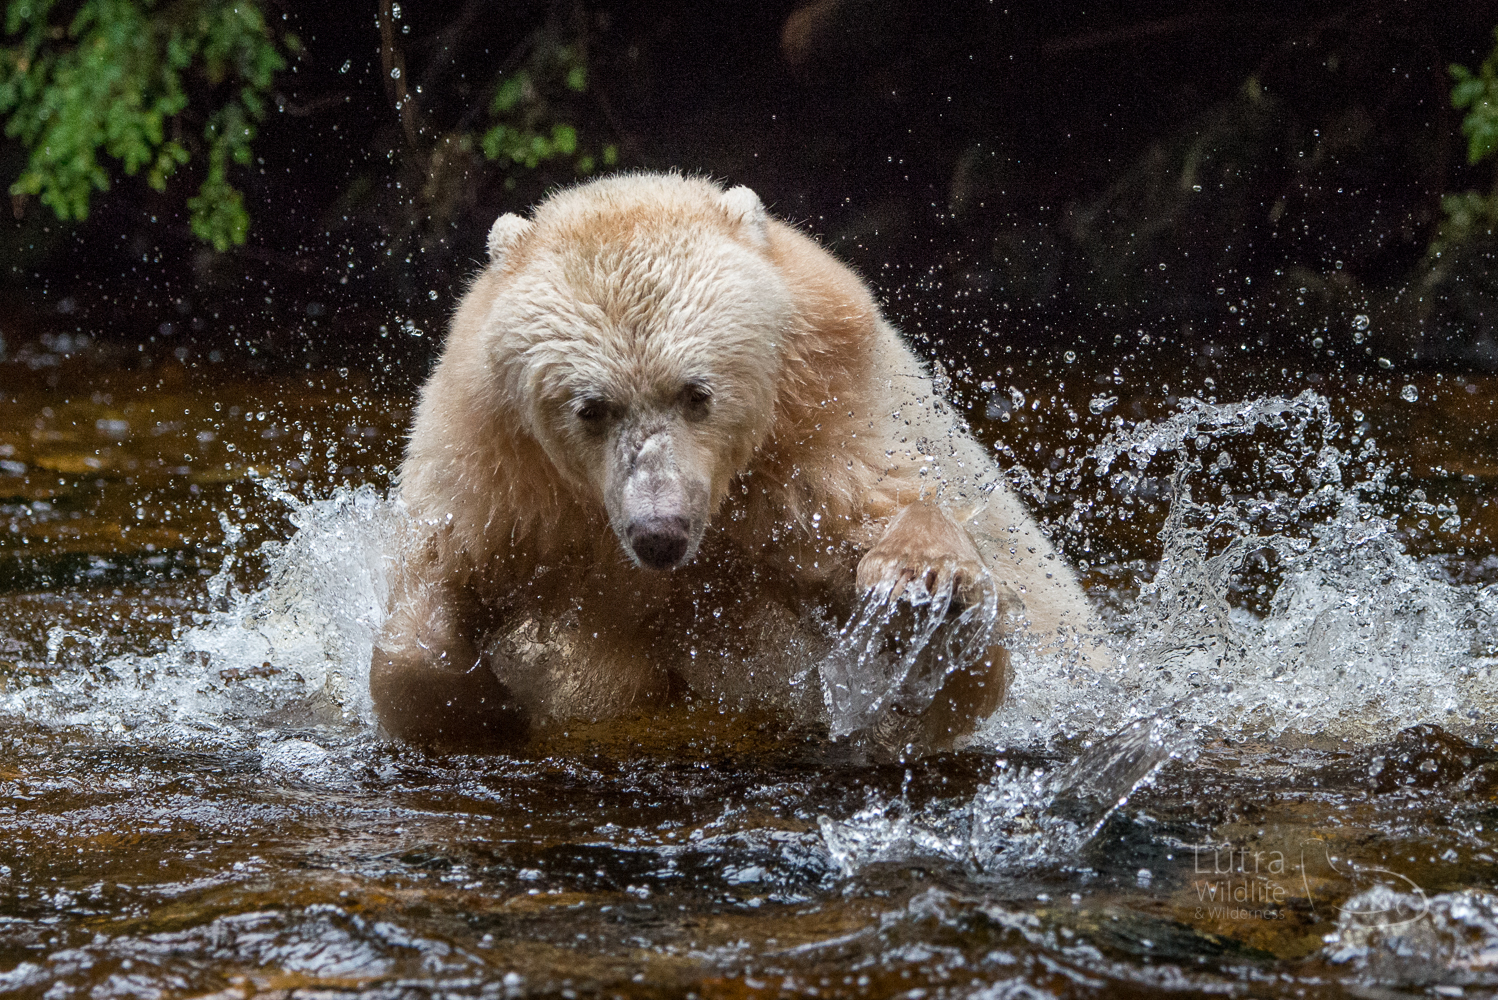 Here's Warrior again (she was a big highlight!) -  Spirit Bears of the Great Bear Rainforest